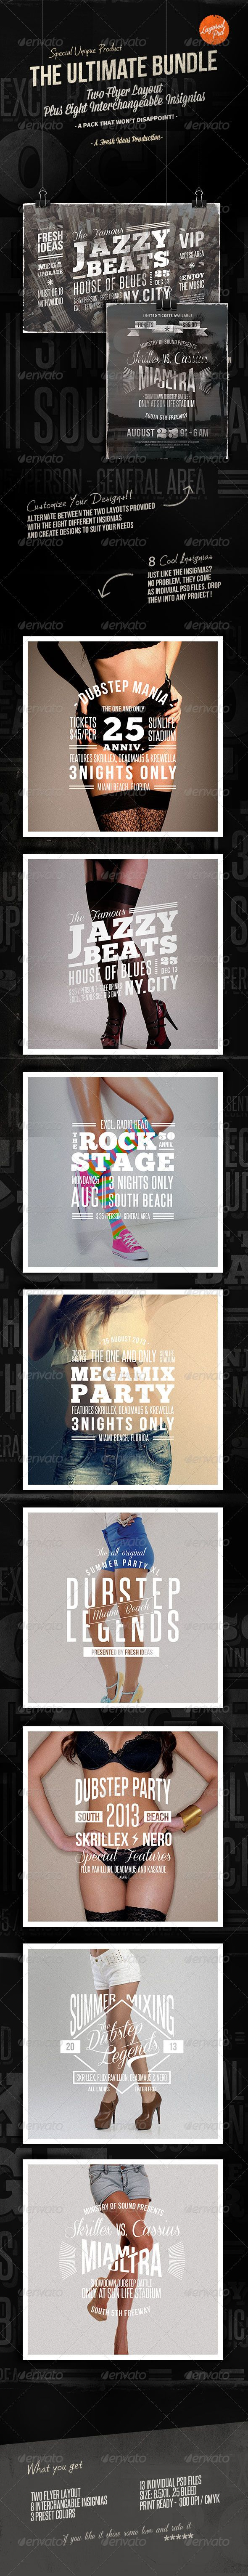 The Ultimate Bundle : Flyers / Insignias #GraphicRiver The Ultimate Bundle: Flyers / Insignias In this bundle you'll find unified our last 2 collections (Vintage Set Vol.1 and Vintage Set Vol.2. It's made of five flyer layouts with three preset vintage colours, one frame design, and eight interchangeable insignias. These insignias have been designed to make up the heart of the flyers. You just have to drop them on each layout to get a multitude of variations. So included in the download file…